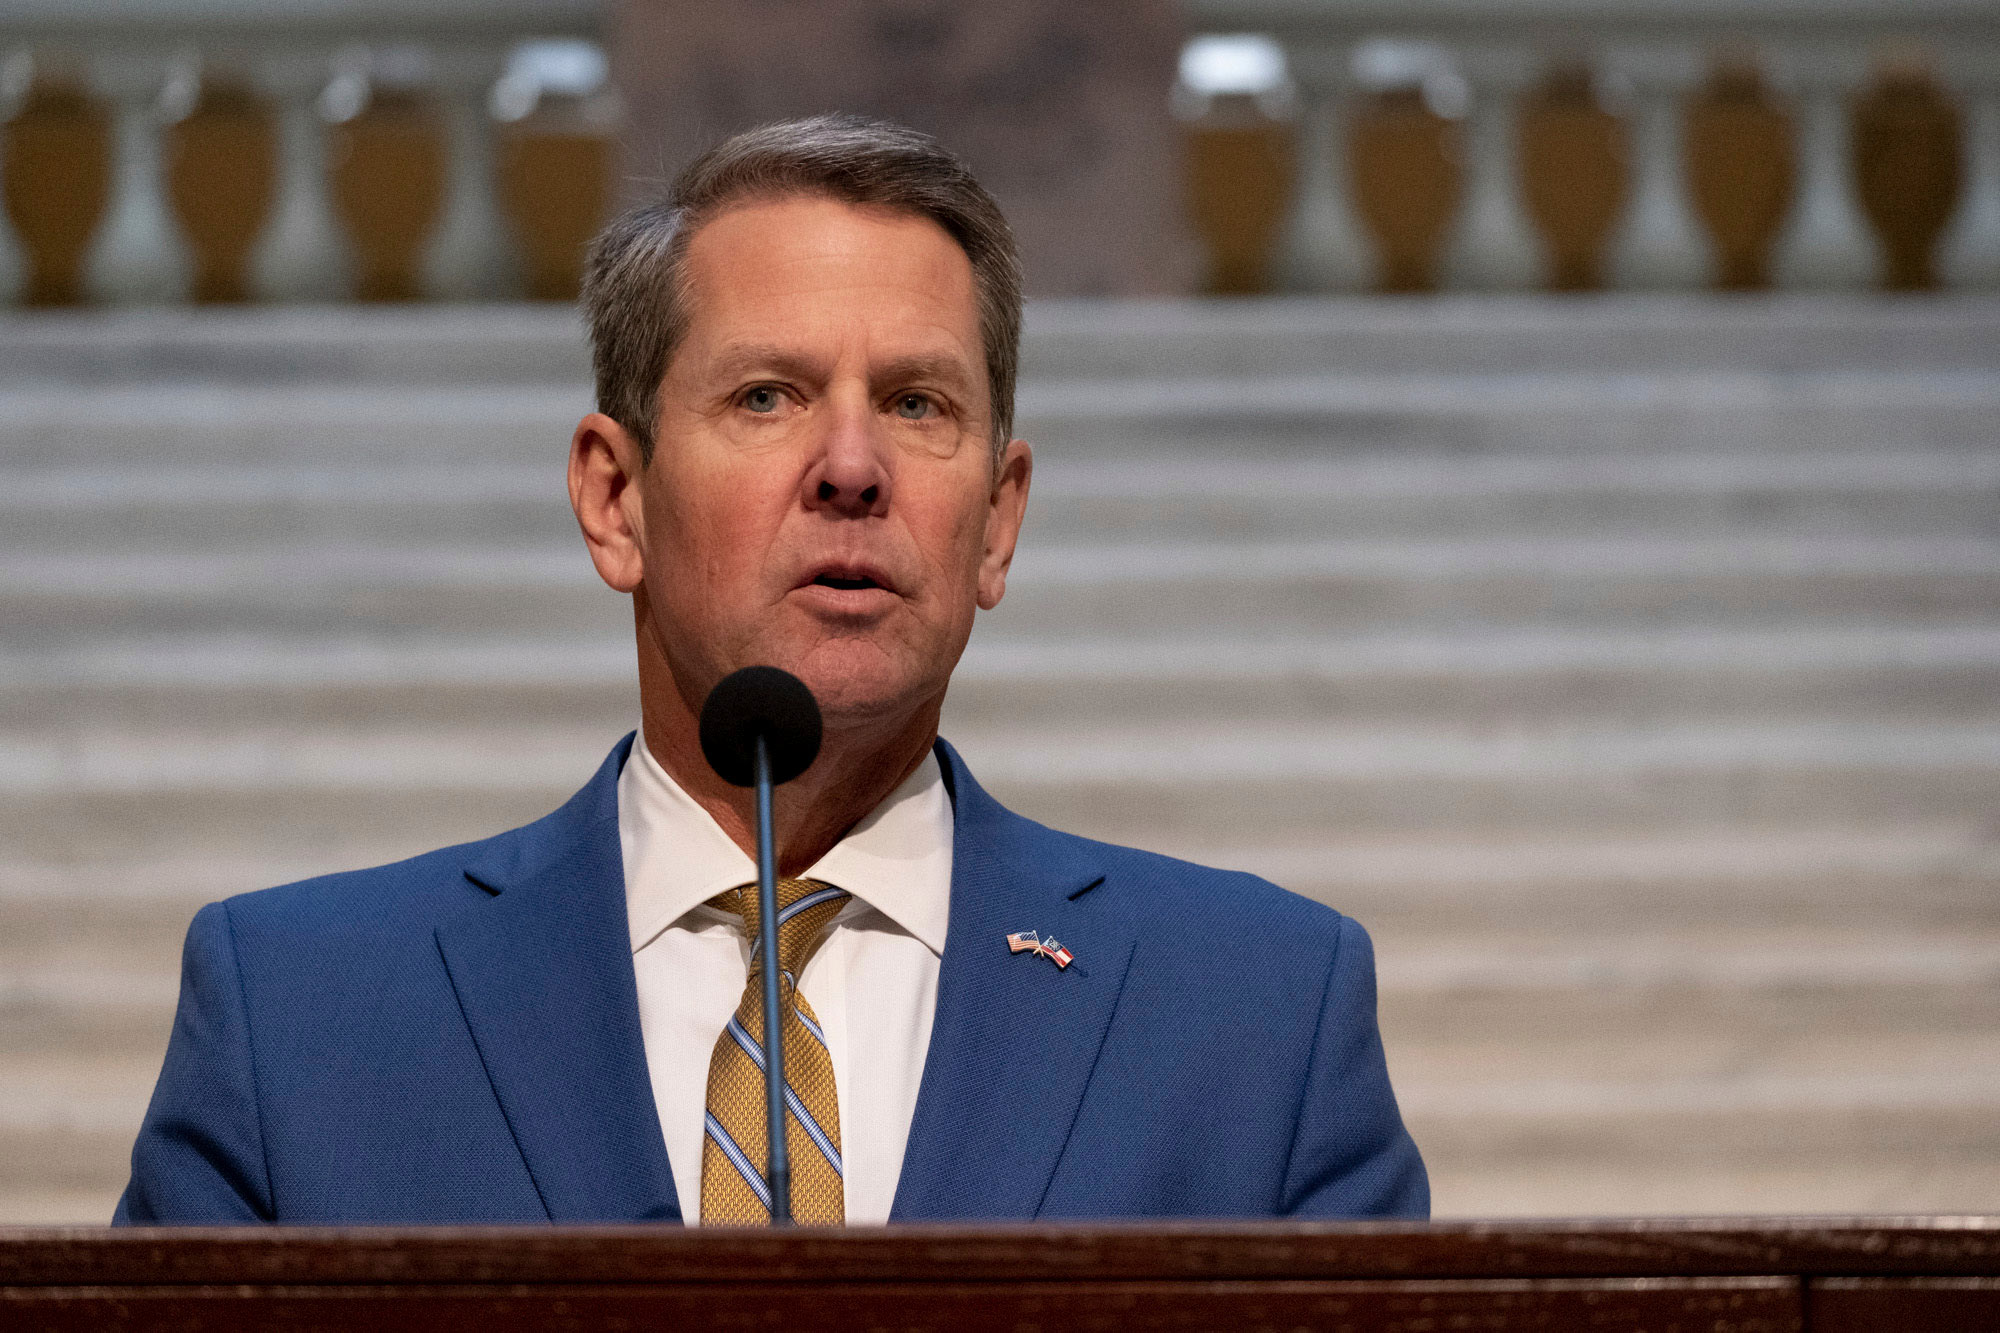 Georgia Gov. Brian Kemp holds a news conference on November 24 at the Georgia State Capitol in Atlanta.